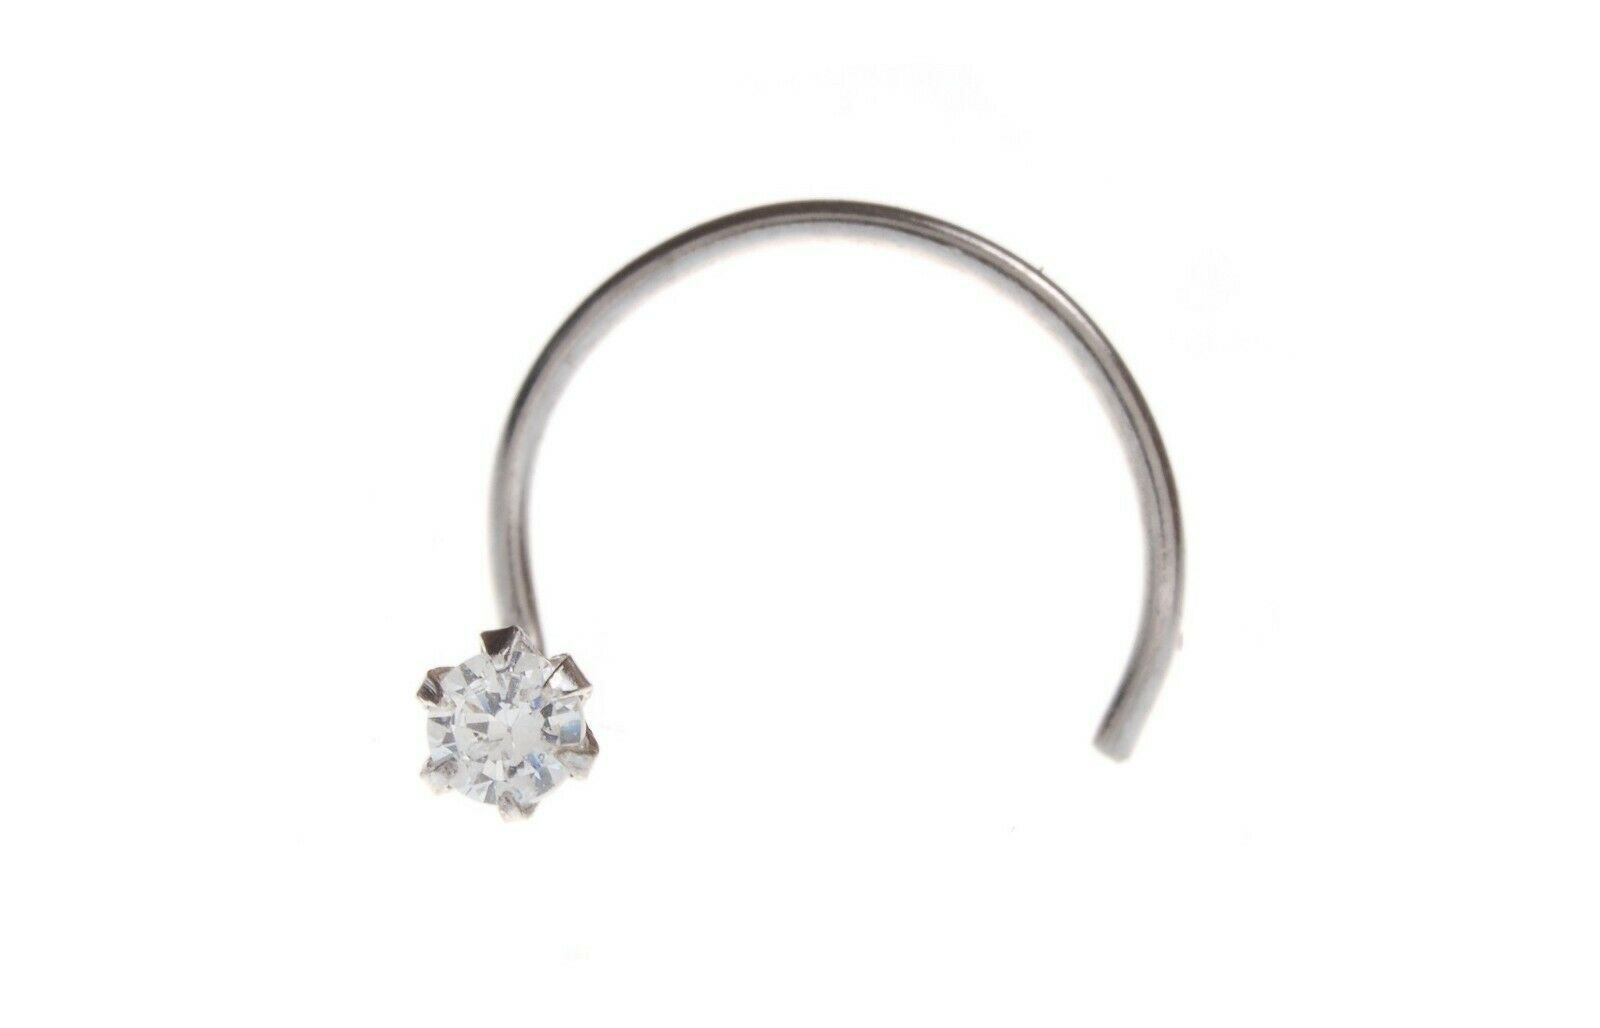 18ct White Gold Nose Stud with a Cubic Zirconia Stone (2.7mm) NS-4690